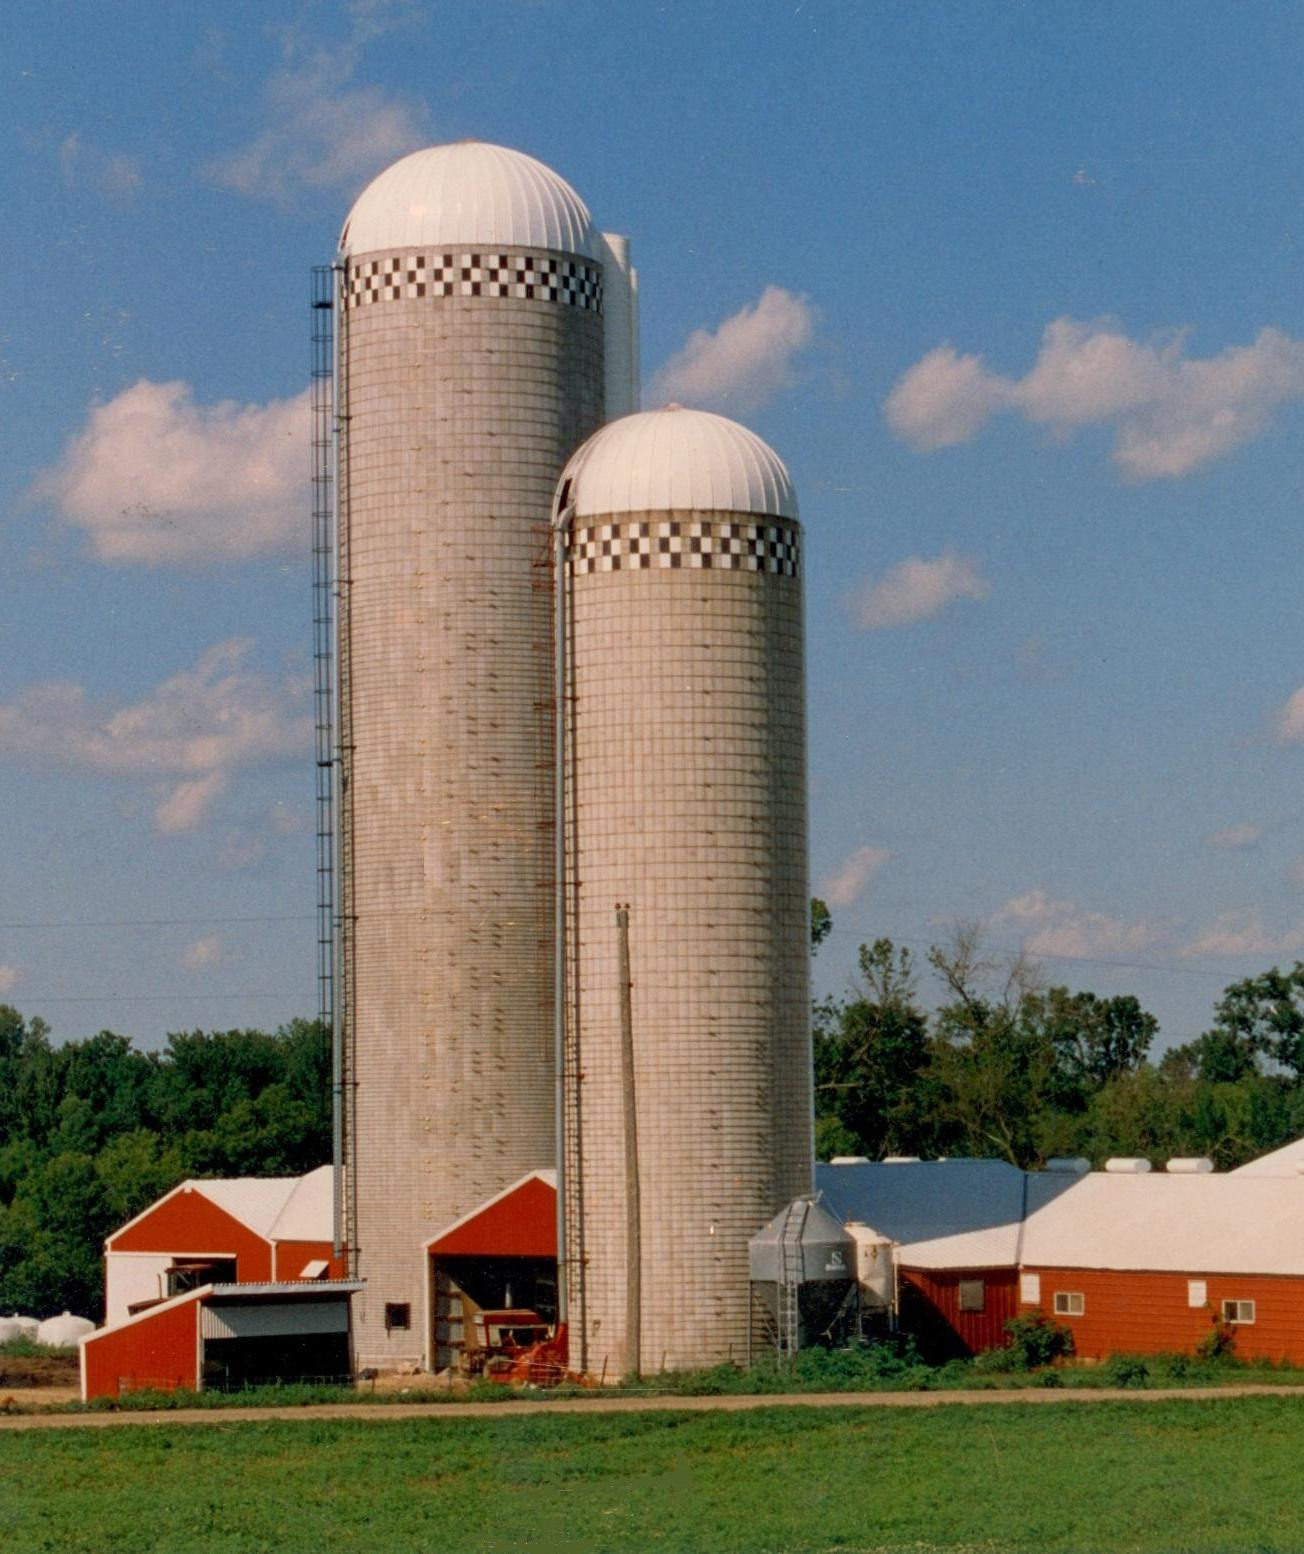 Are Silos Always Bad?